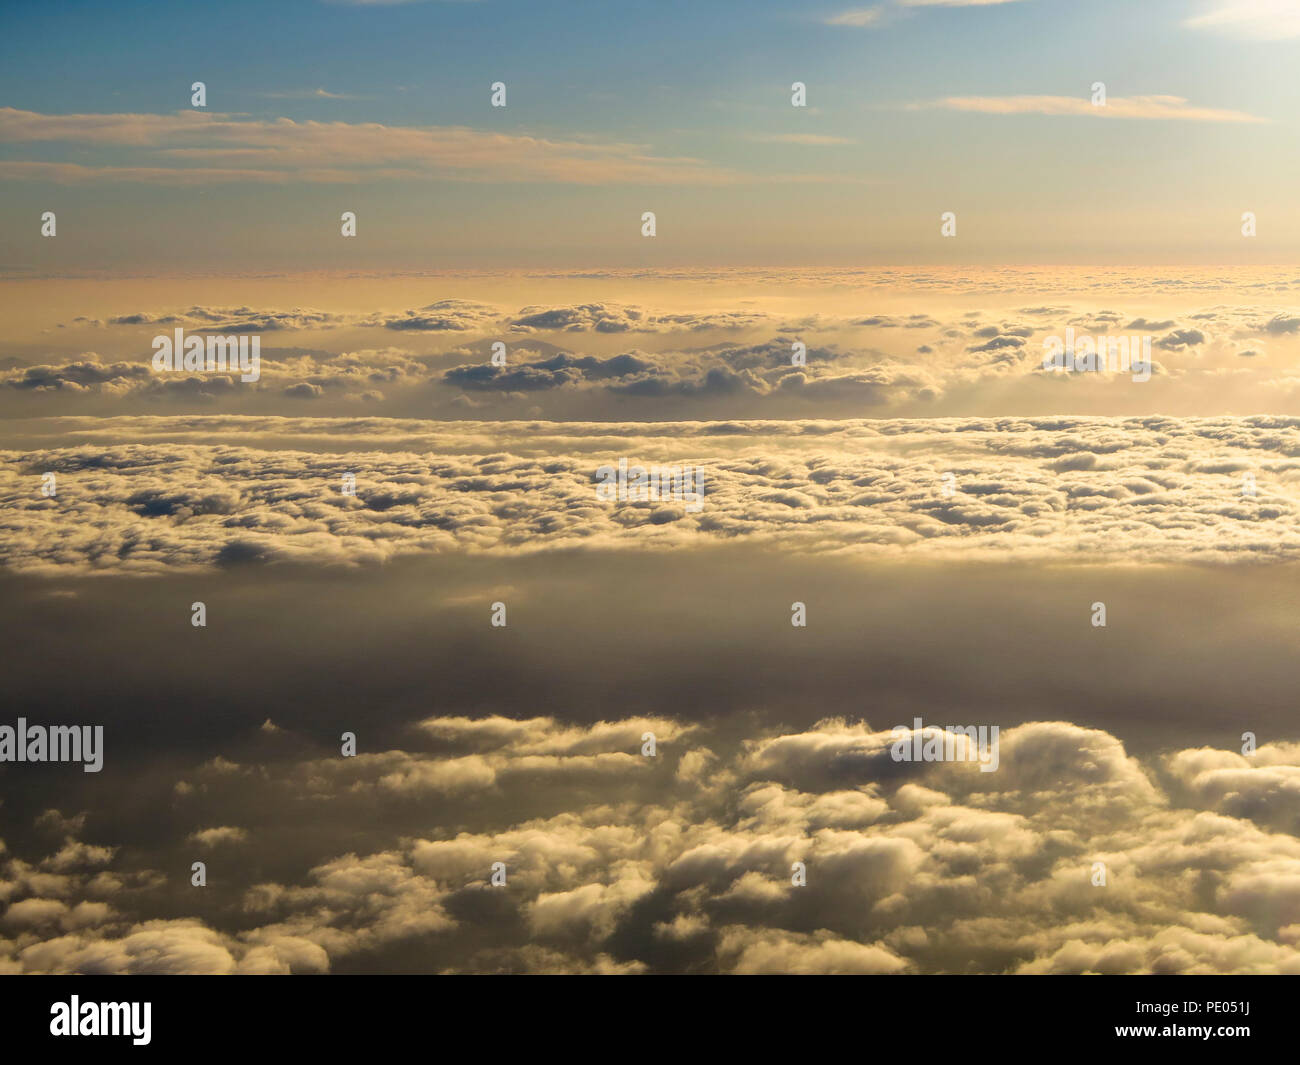 Cloudscape from aeroplane window before sunset - Stock Image